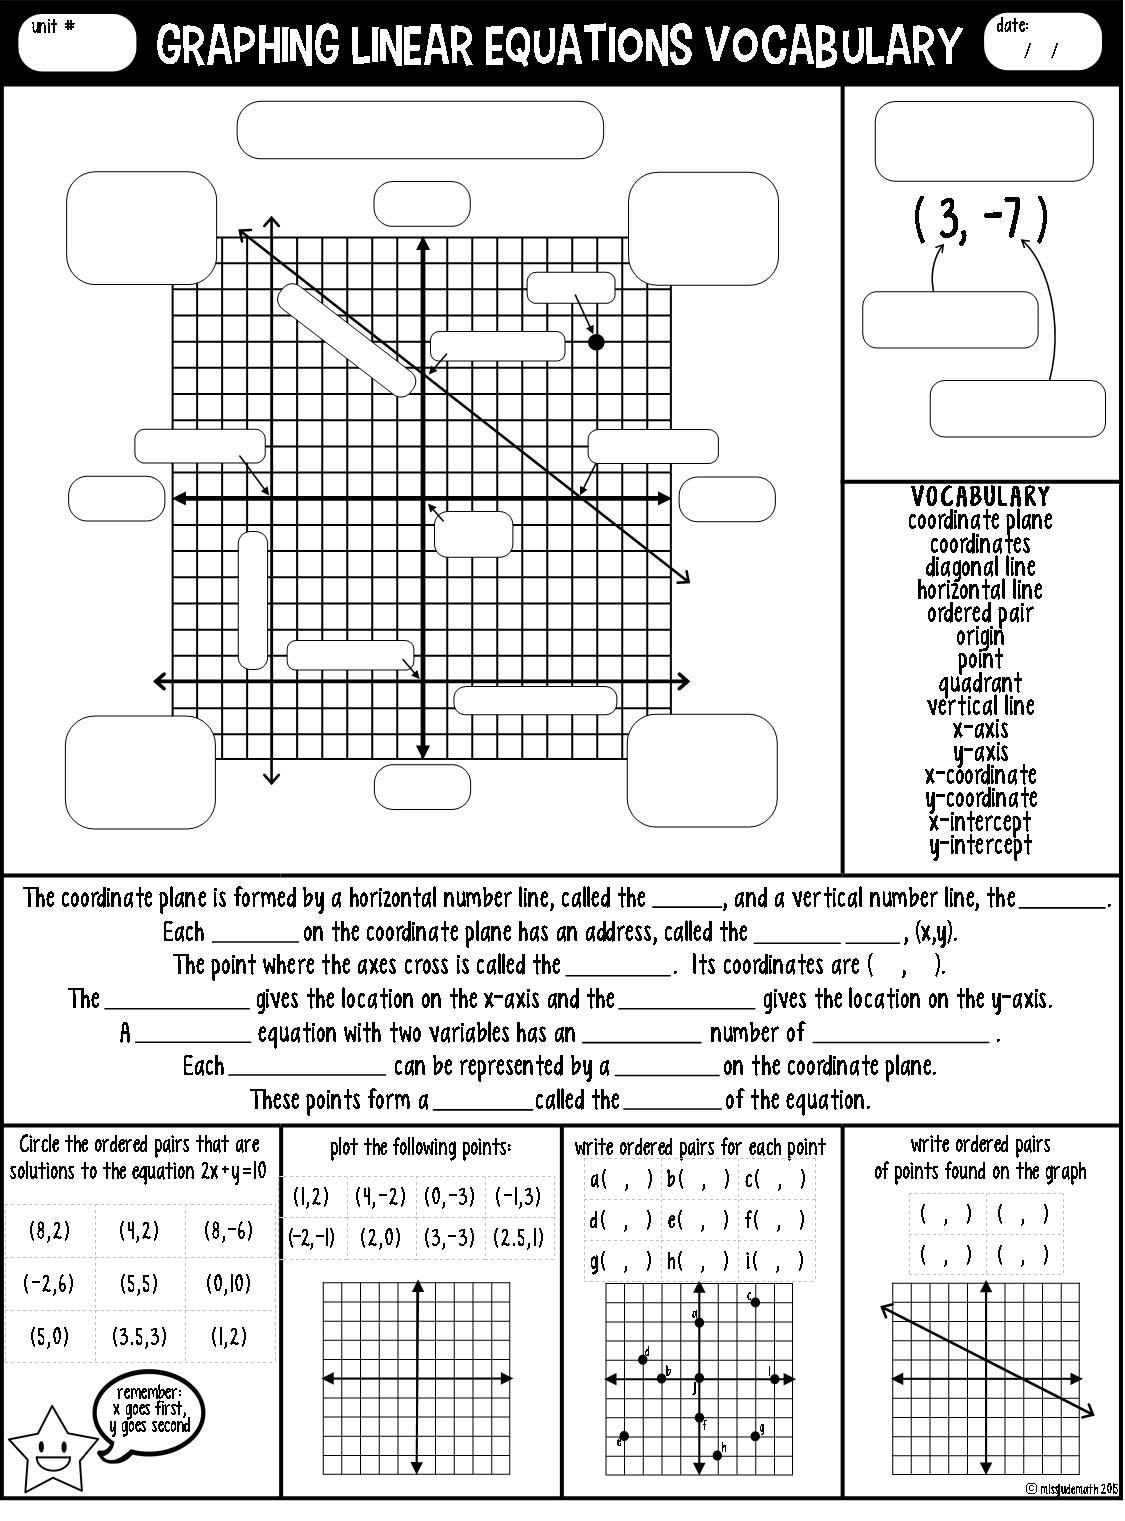 Graphing Linear Functions Worksheet Graphing Linear Equations Vocabulary Guided Notes